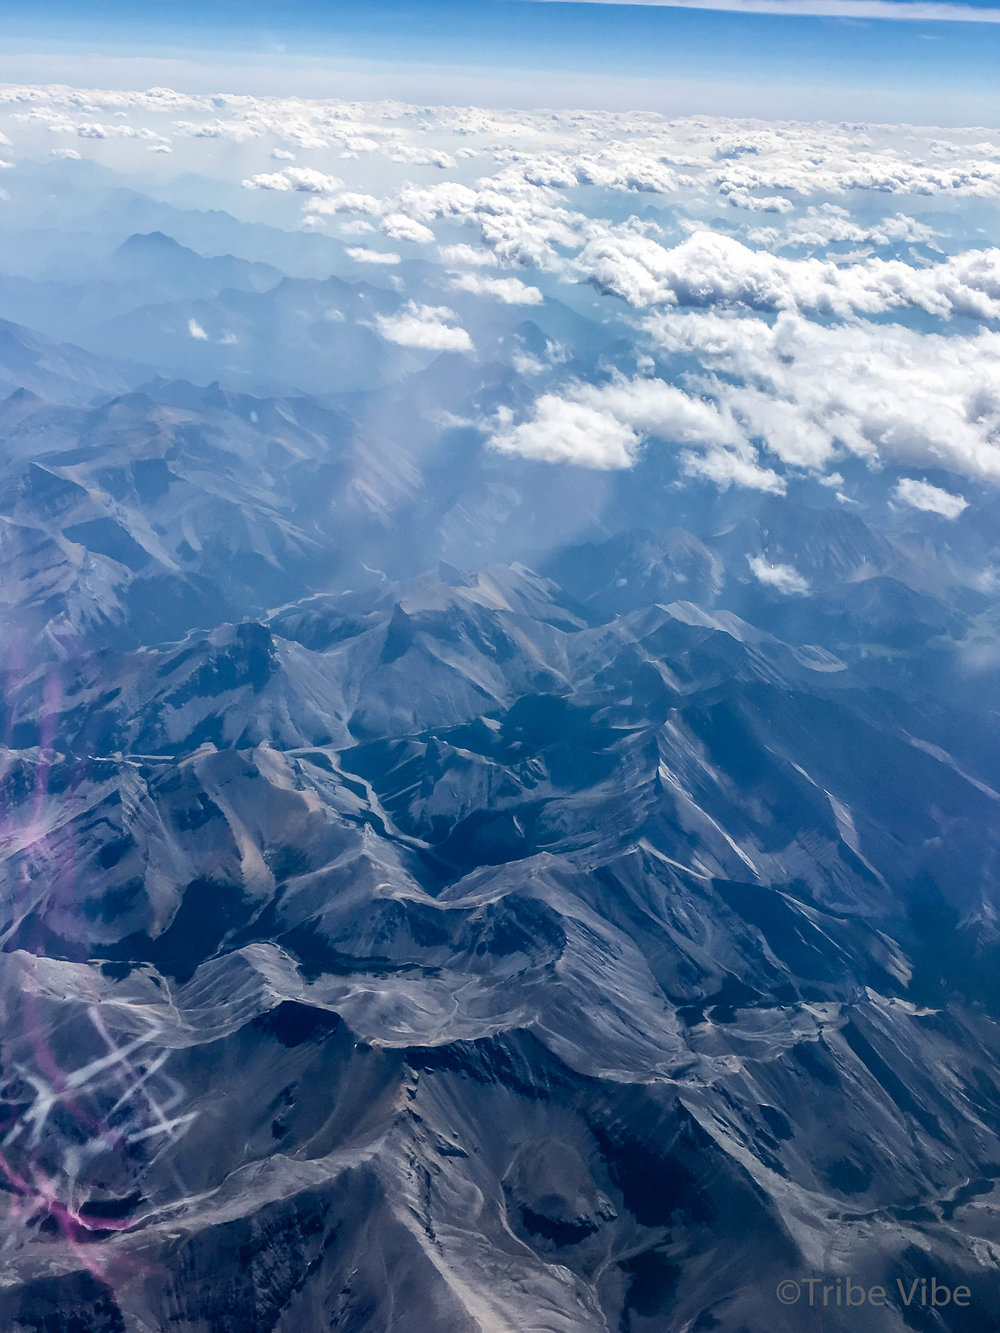 Photo from the airplane window,a fraction of the Canadian rocky Mountains. Incredible!